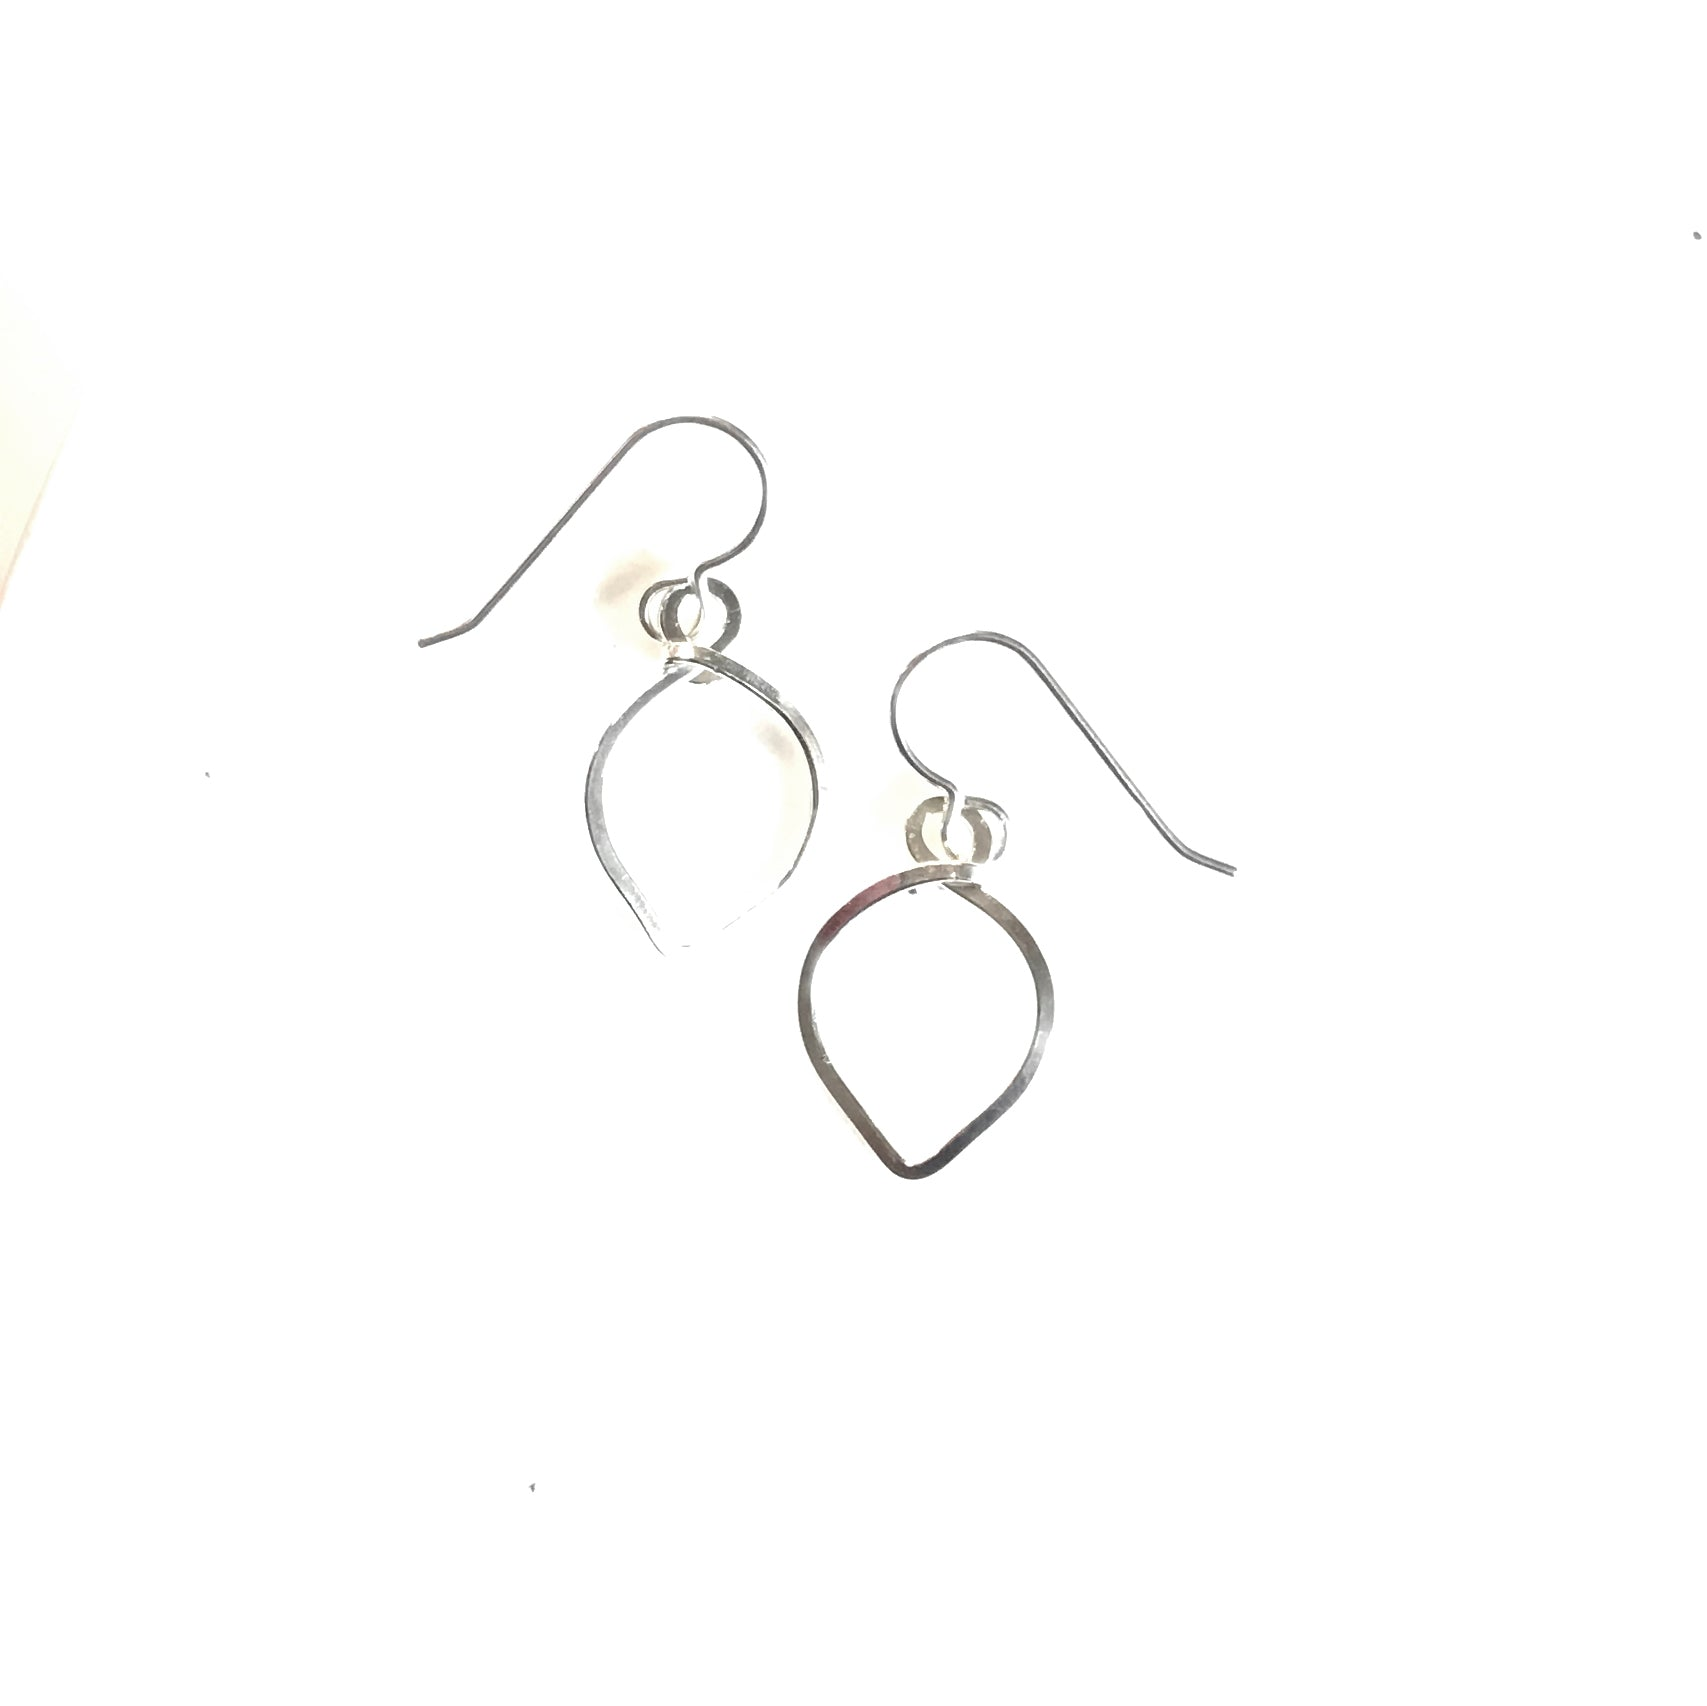 Lotus Petal Drop Earrings available in Sterling Silver, Rose Gold, Yellow Gold, Copper, Bronze